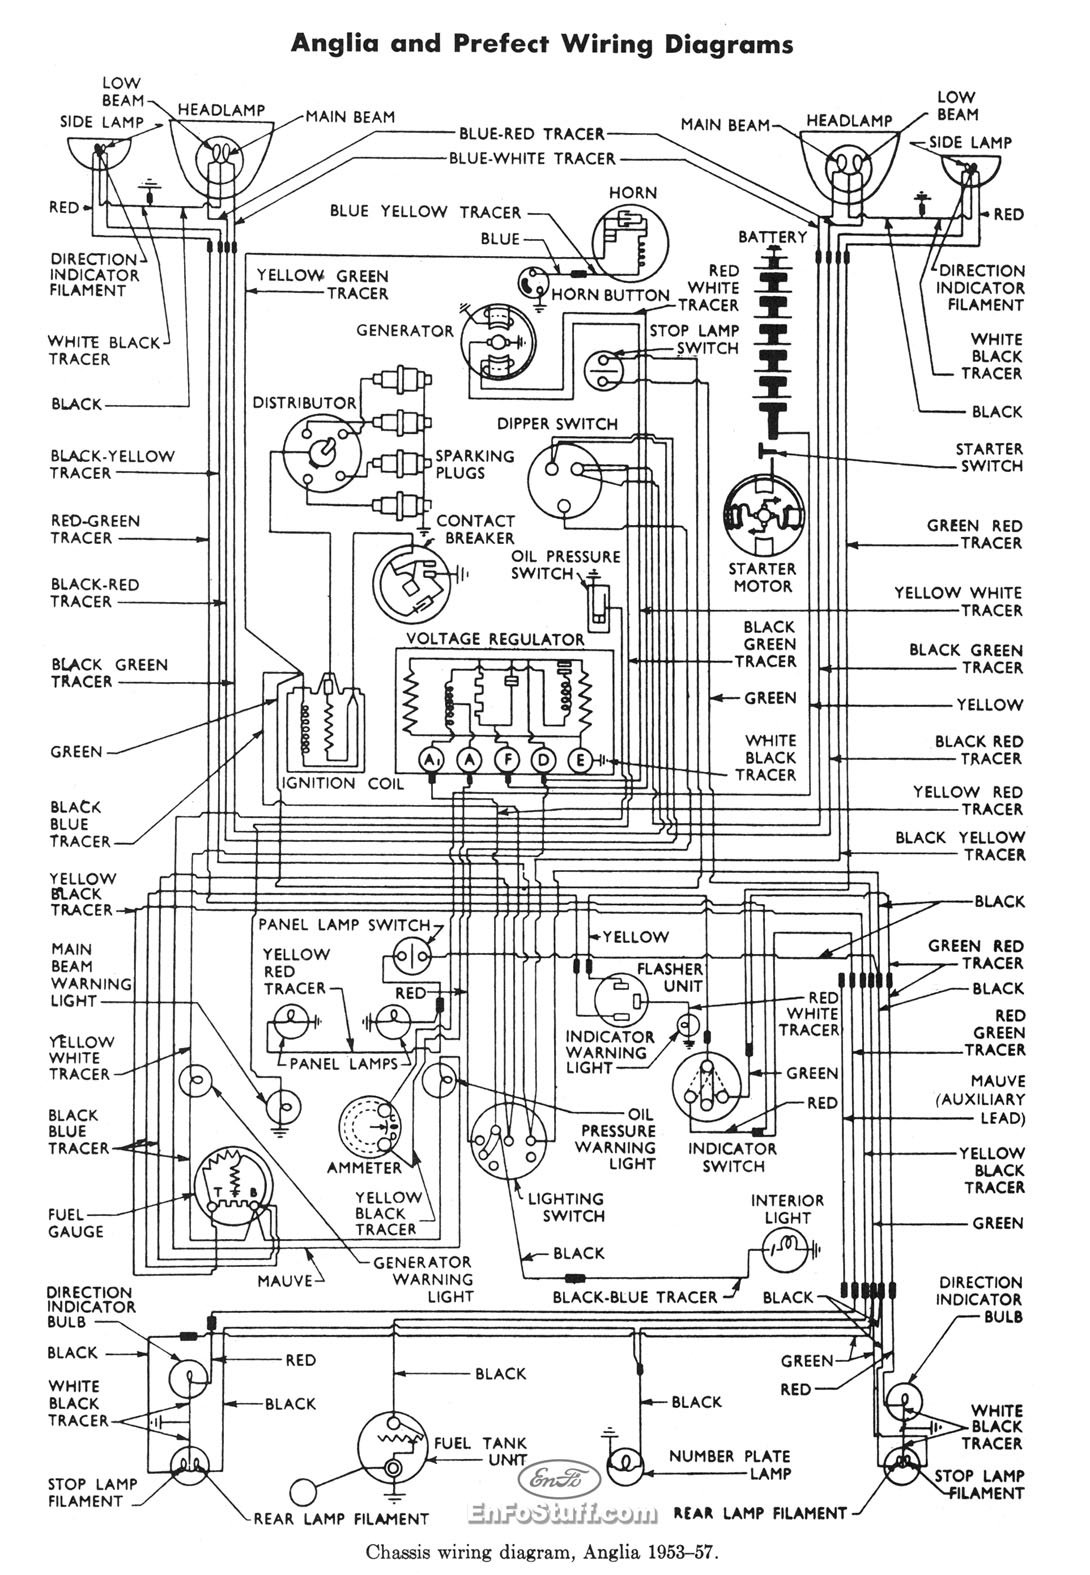 3000 ford tractor alternator wiring diagrams pdf with 1978 Ford 555 Backhoe Wiring Diagram on Cabela S Winch Wiring Diagram besides 1978 Ford 555 Backhoe Wiring Diagram additionally Ford 4610 Wiring Diagram Free Download Schematic furthermore Jd 1020 Wiring Diagram also Tractor Wiring Diagram For A Light.